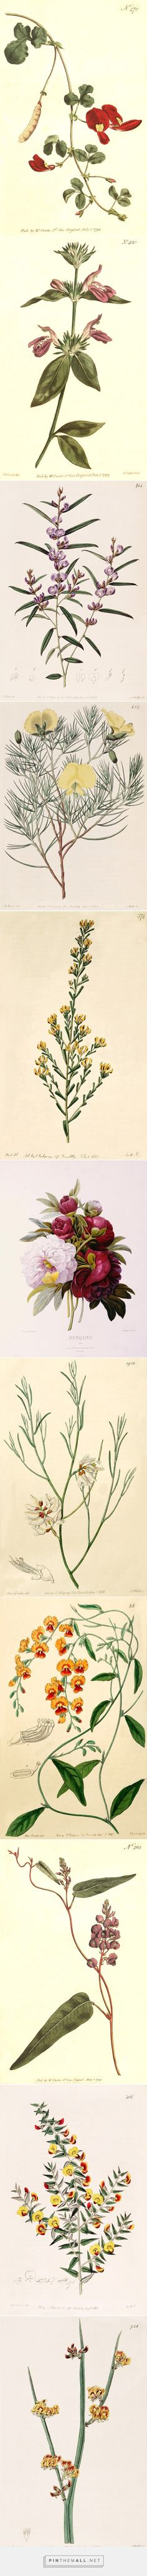 Vintage Botanical Illustrations // Pierre Joseph Redouté. He's one of my favorites.